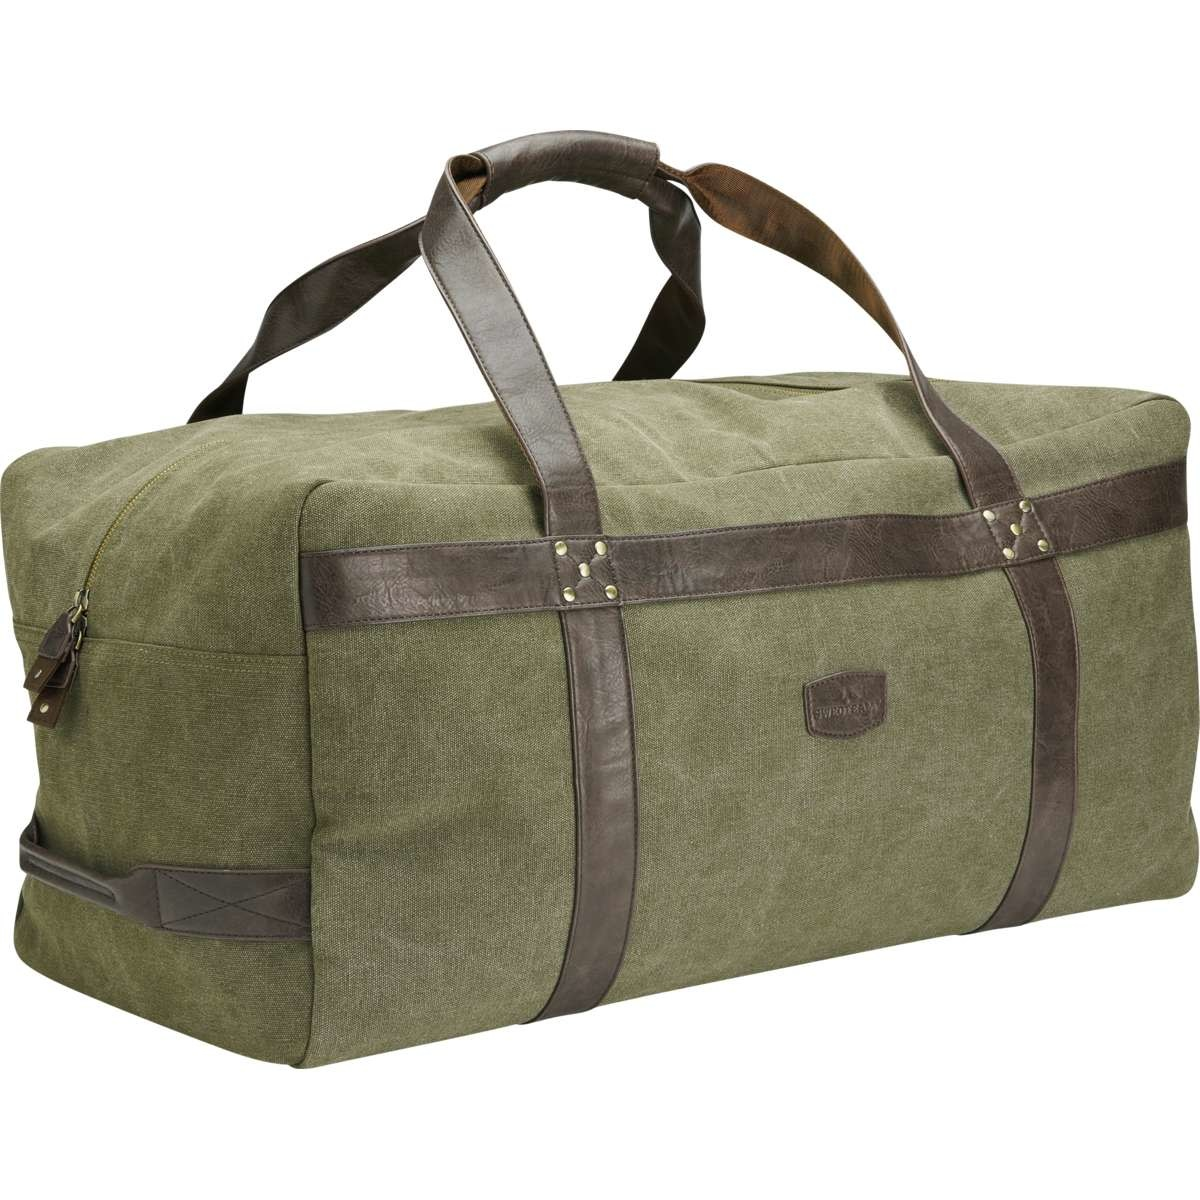 Swedteam Canvas Duffel Bag 1919